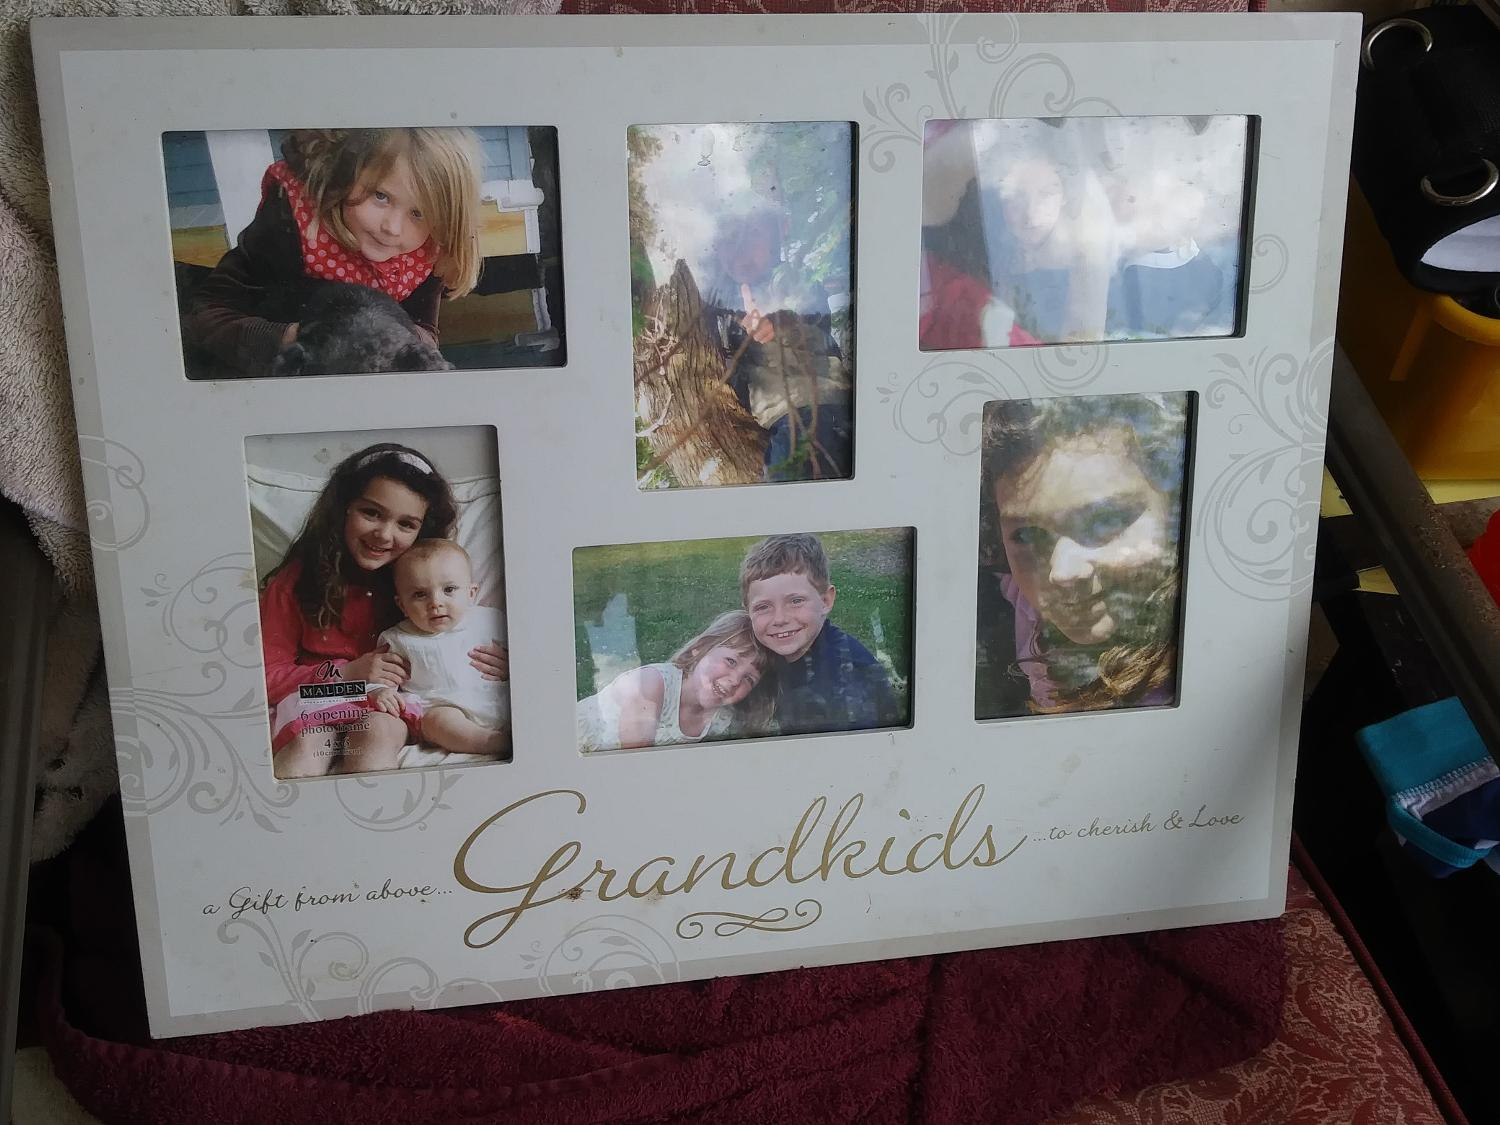 Best Grandkids Picture Frame for sale in Thomaston, Georgia for 2018